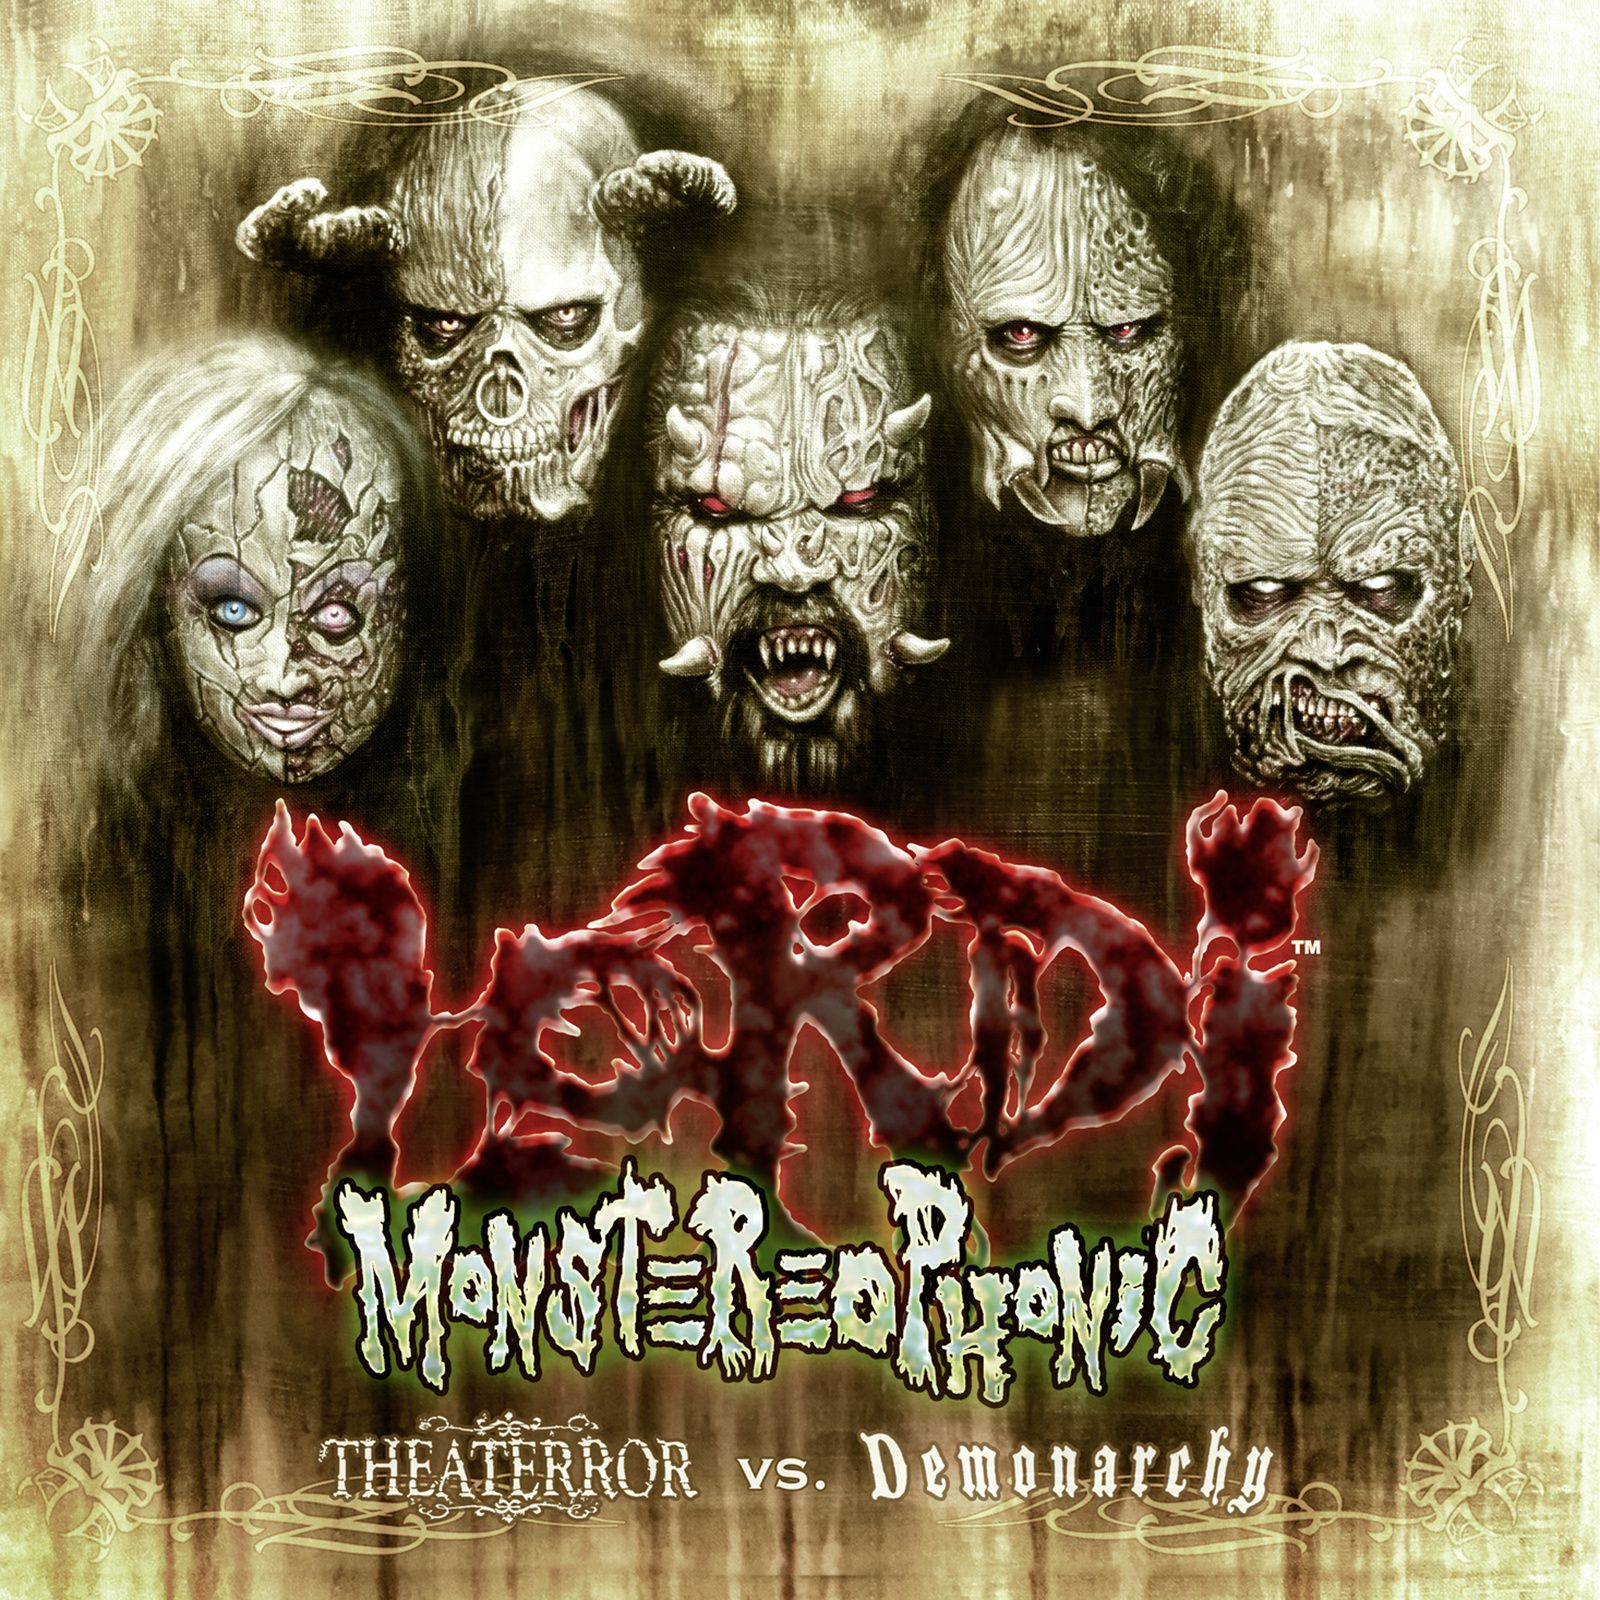 CD review LORDI &quot&#x3B;Monstereophonic - Theaterror vs Demonarchy&quot&#x3B;